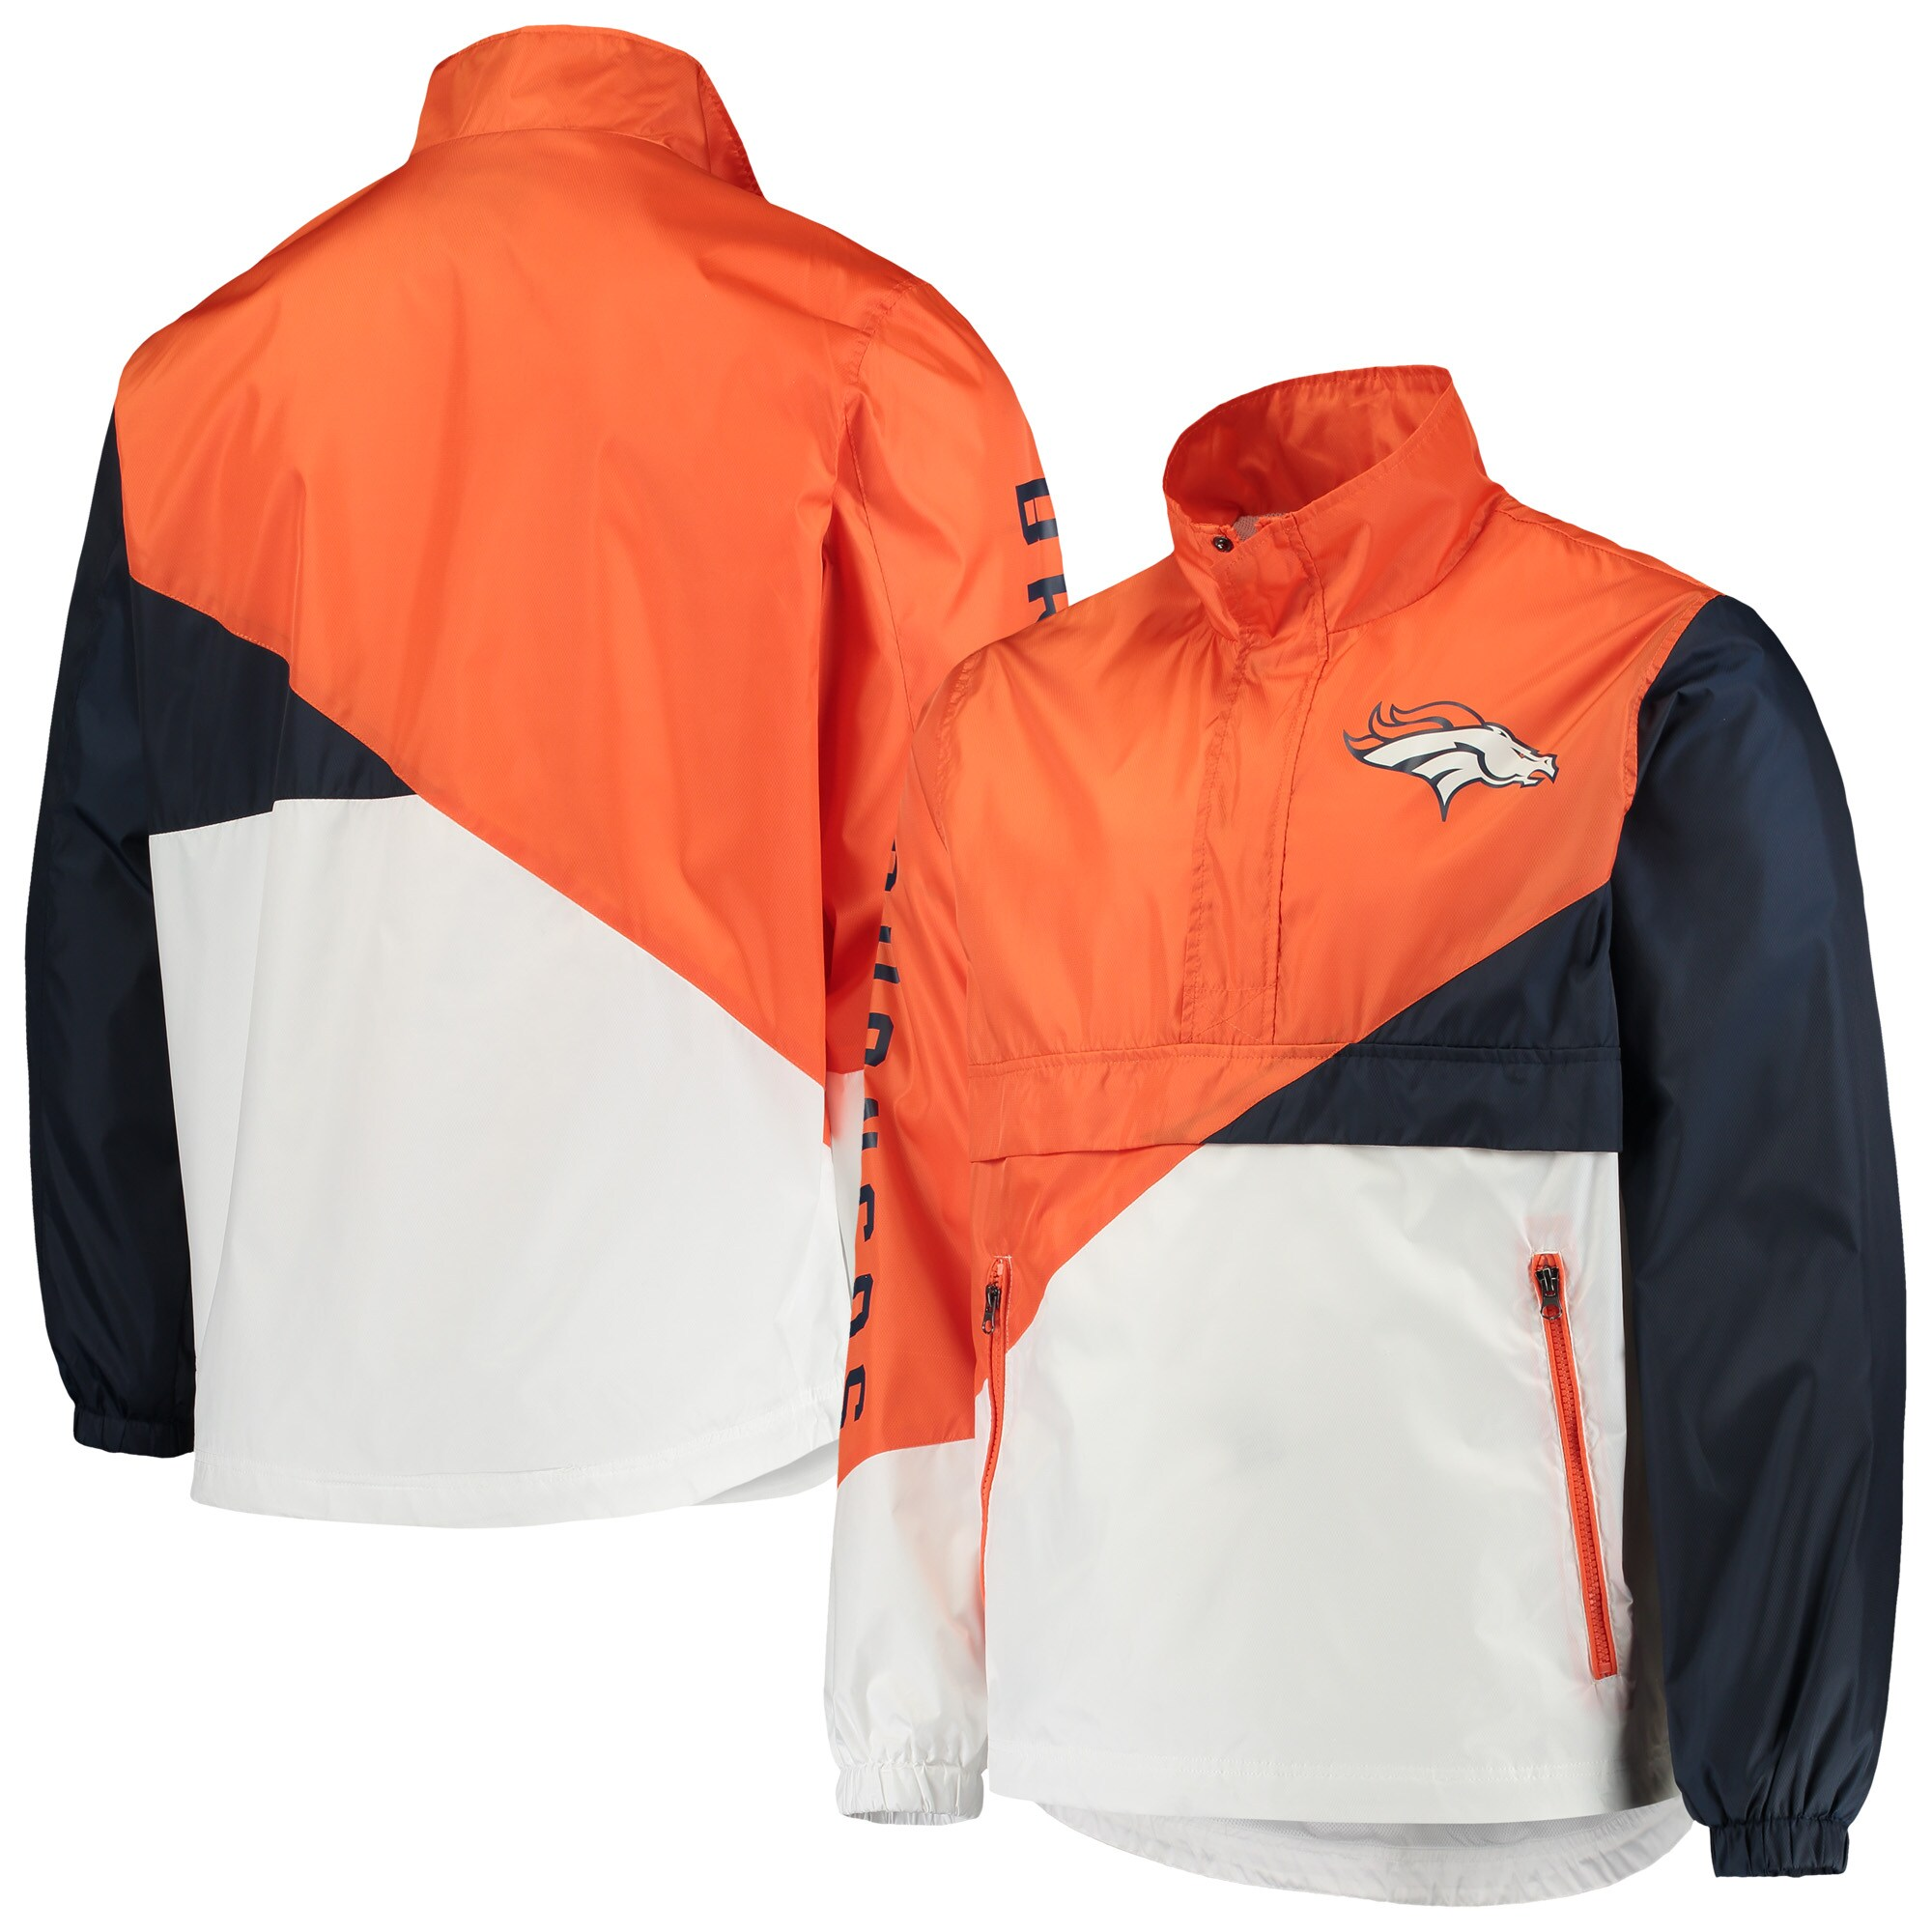 Denver Broncos G-III Sports by Carl Banks Double Team Half-Zip Pullover Jacket - Orange/White